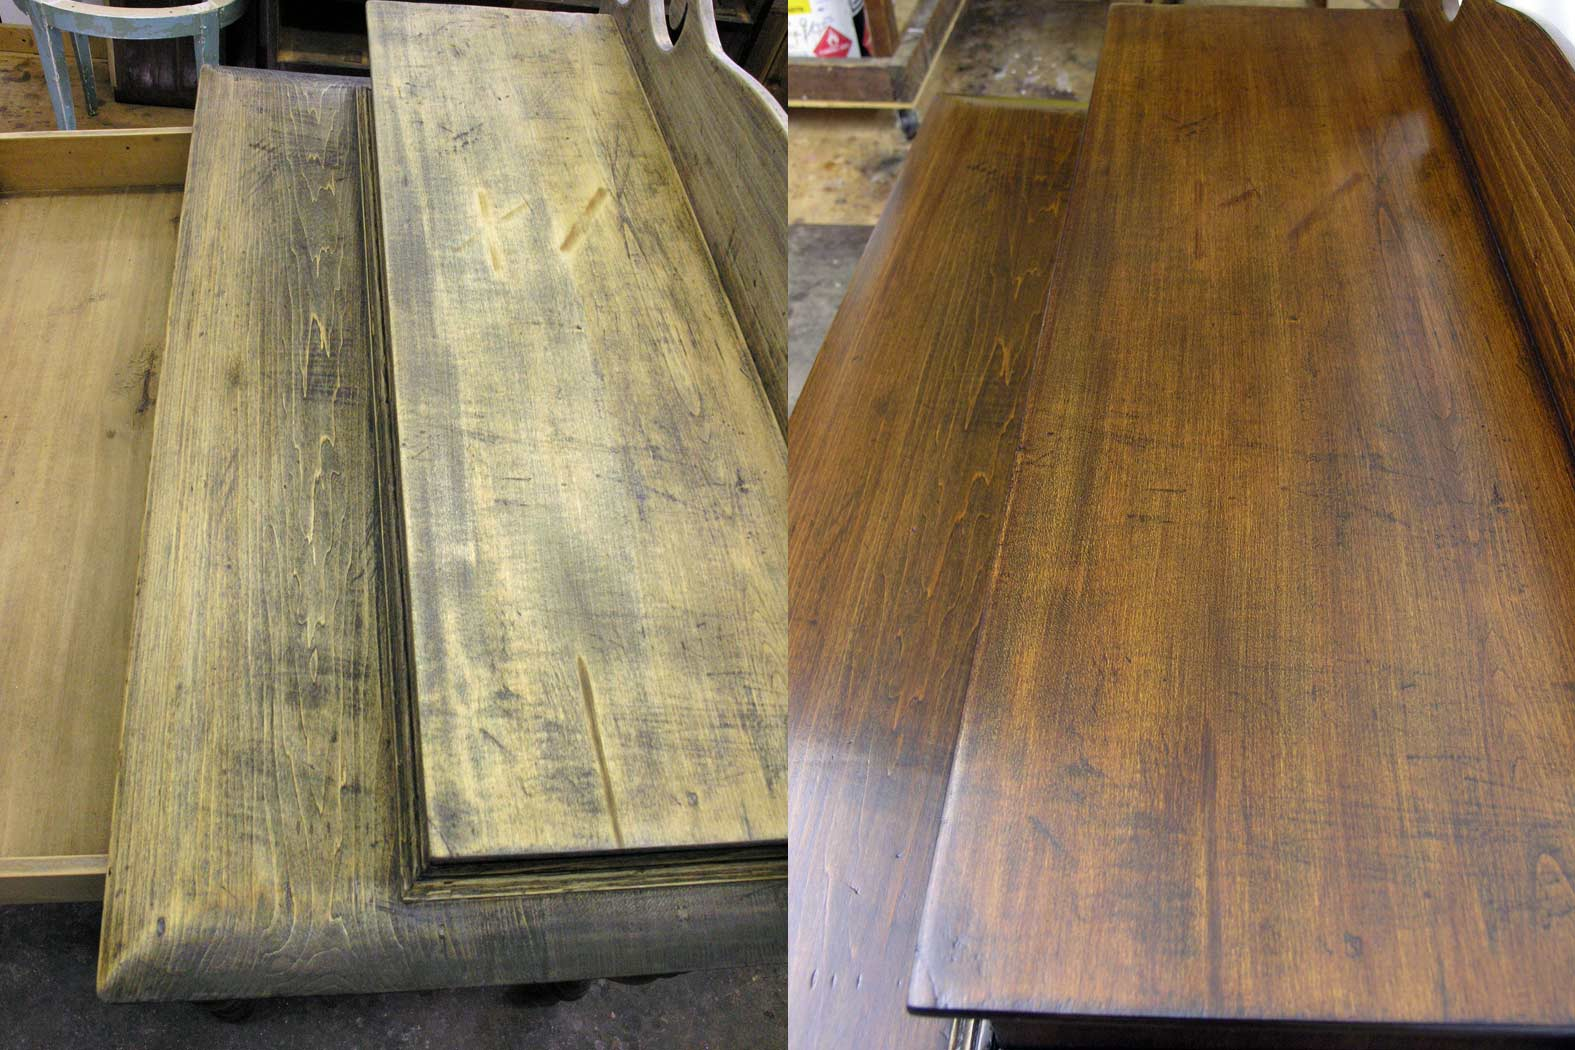 Ladies desk top before and after refinish